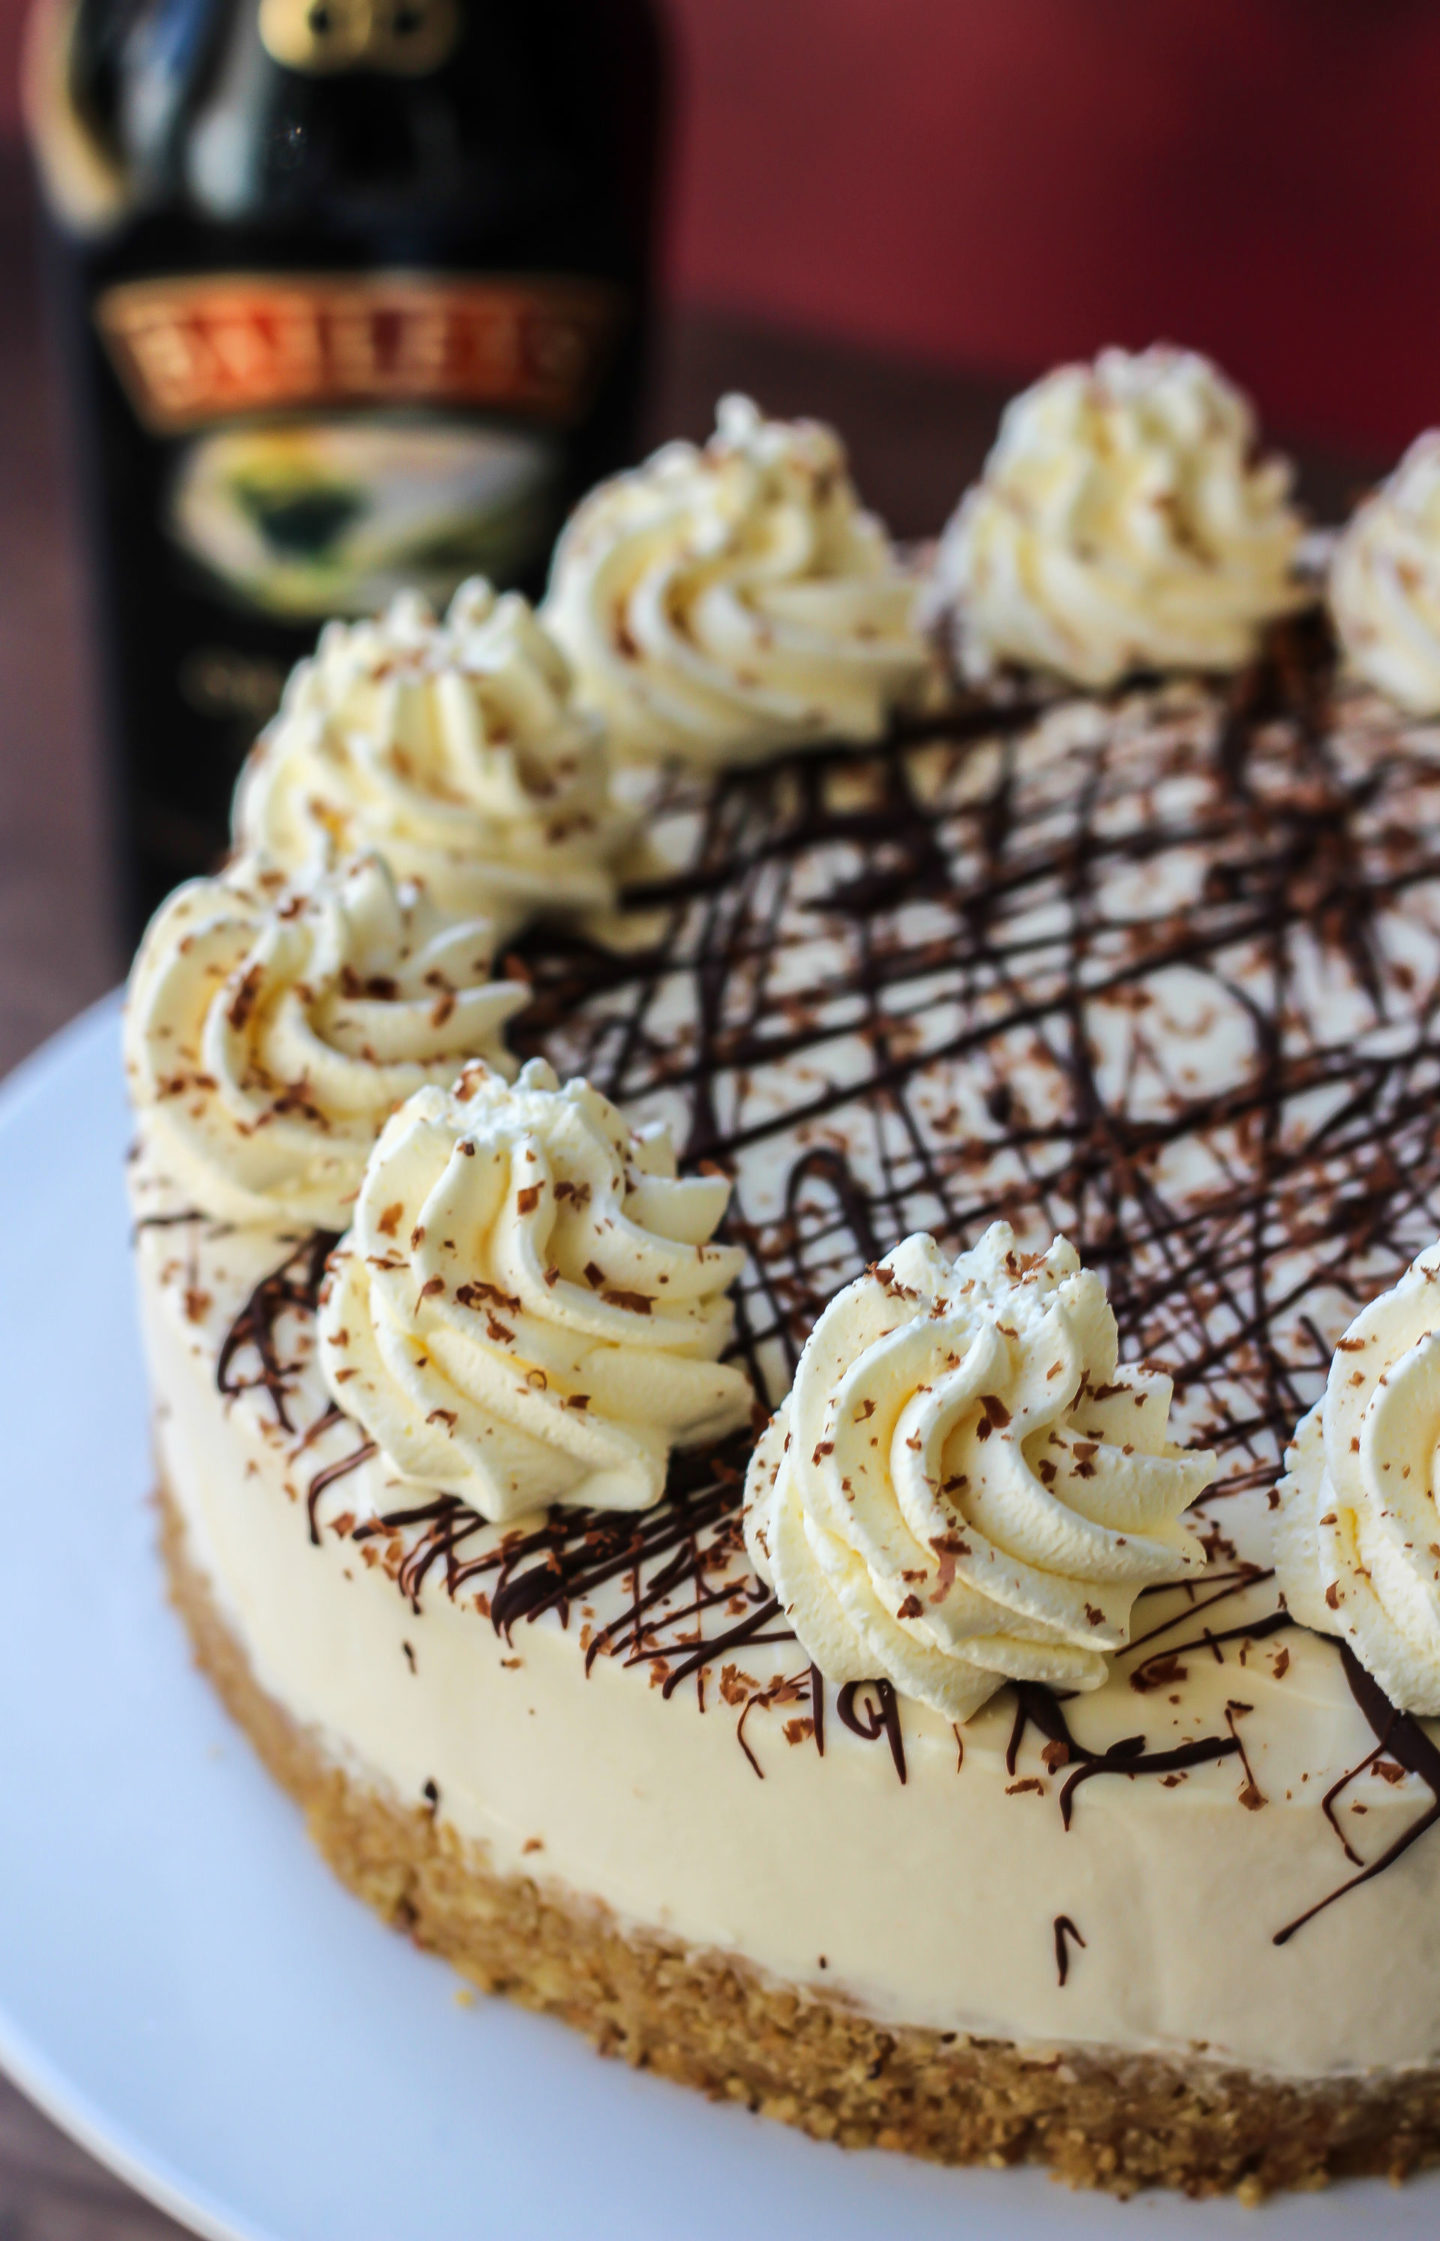 close up of no-bake Baileys cheesecake with bottle of Baileys in background